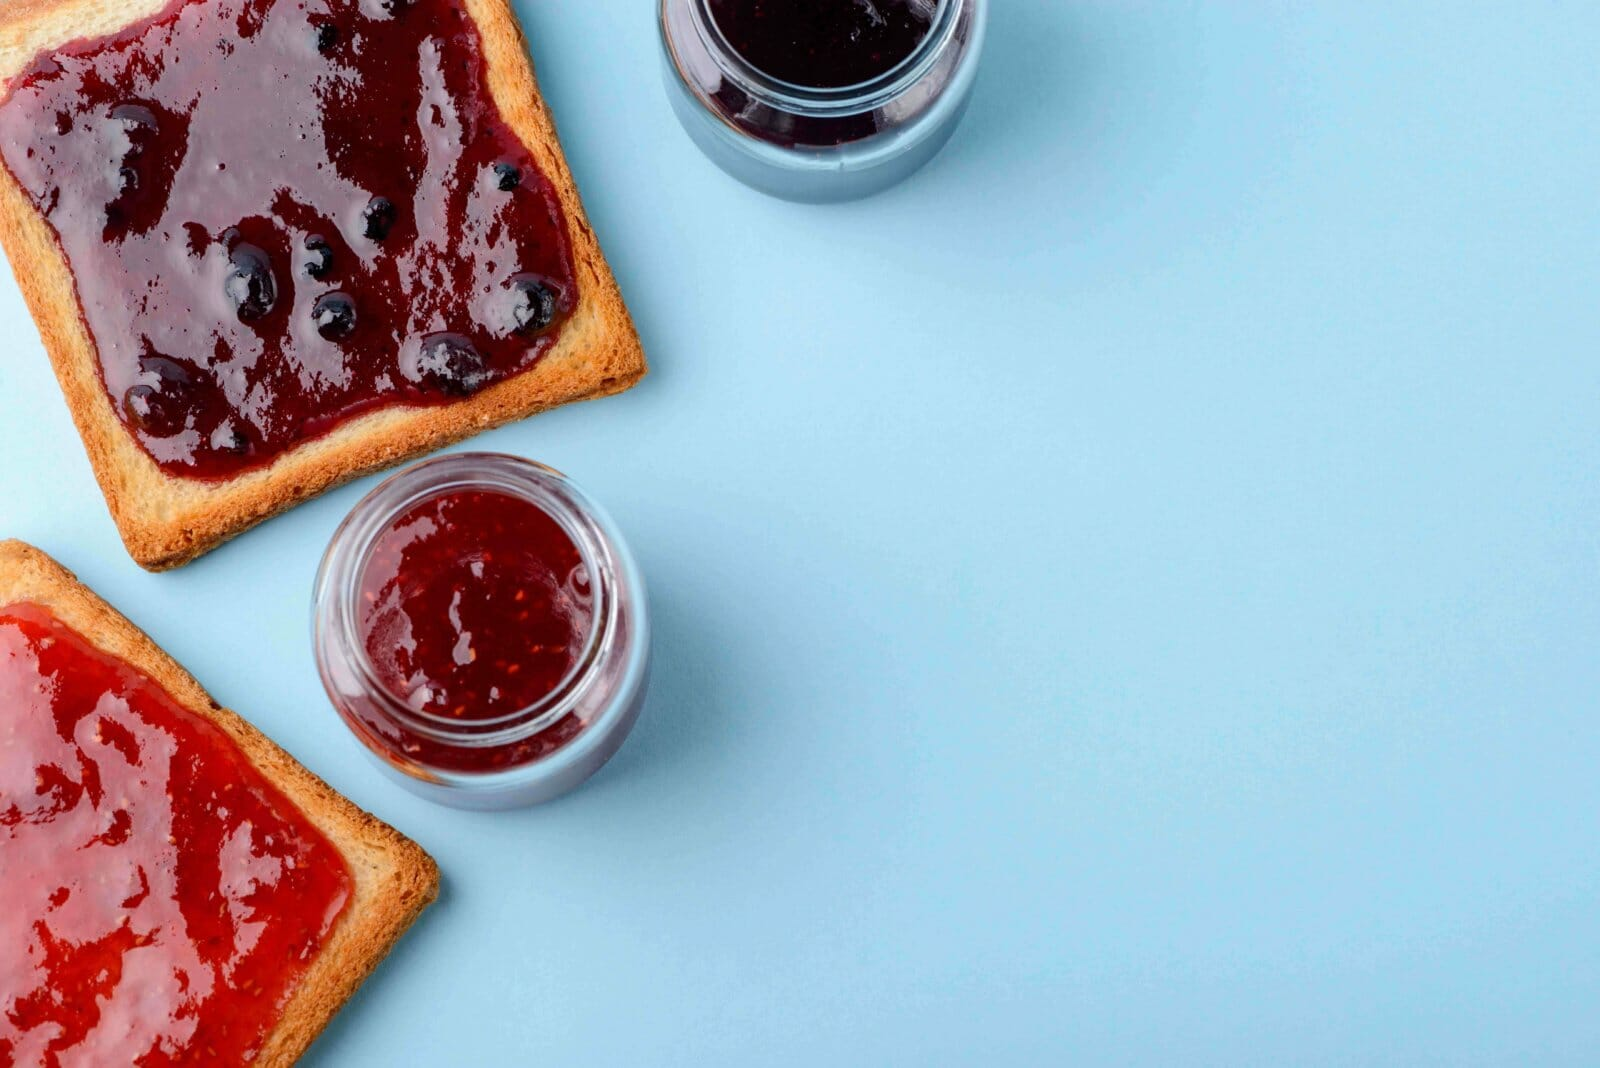 What's our Bread & Jam?